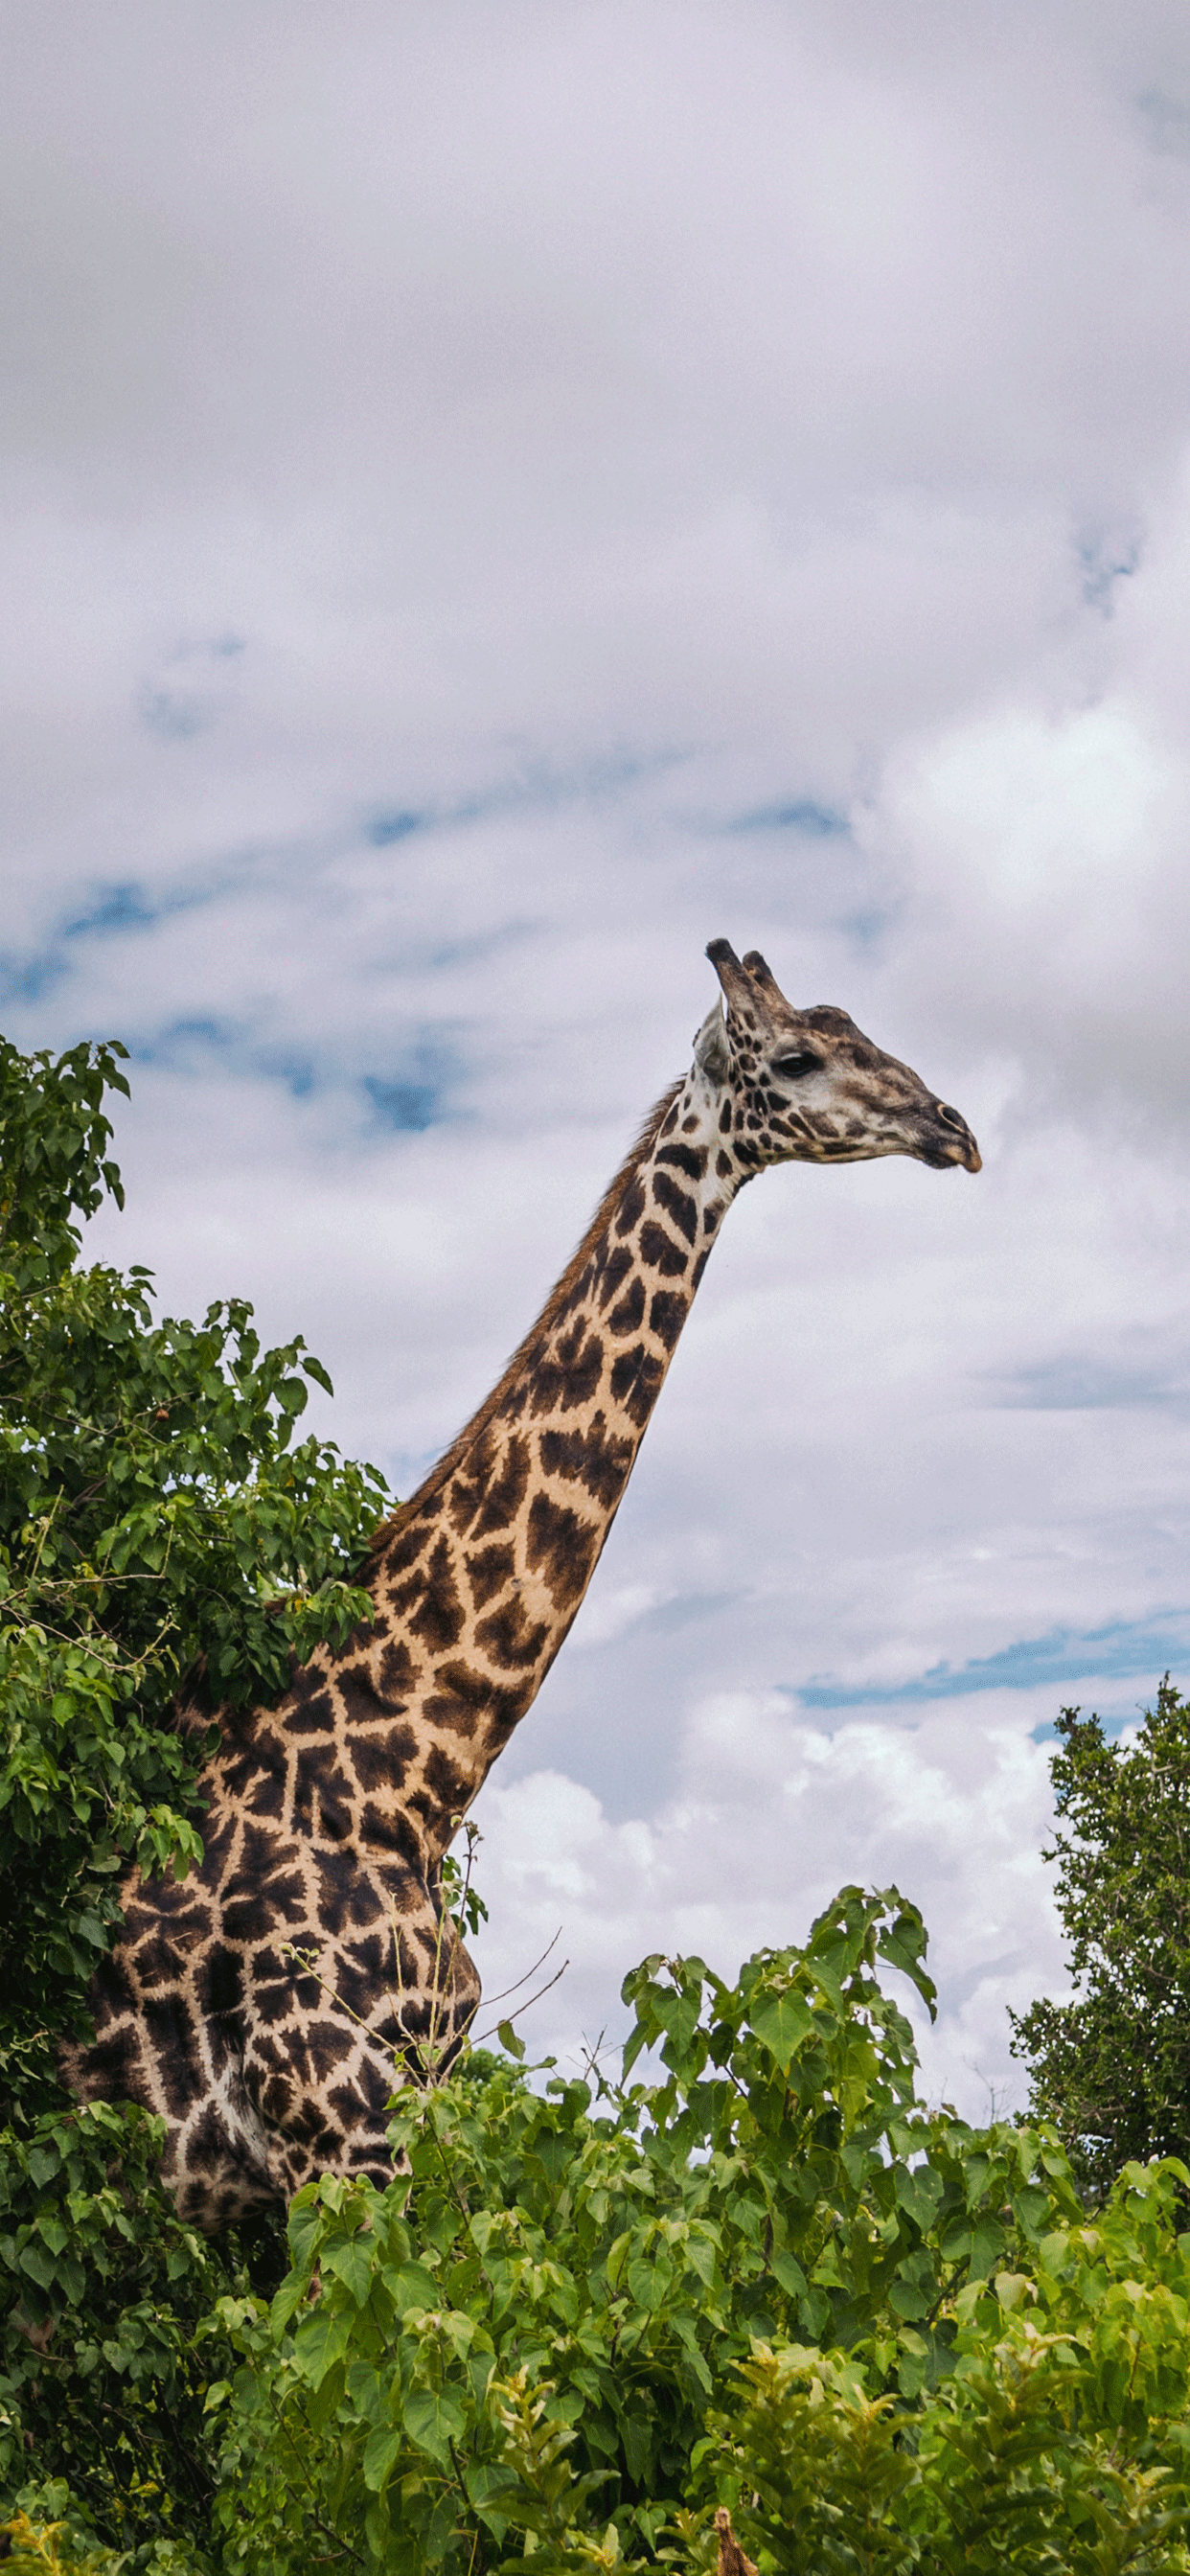 iPhone wallpaper botswana giraffe Fonds d'écran iPhone du 19/03/2019